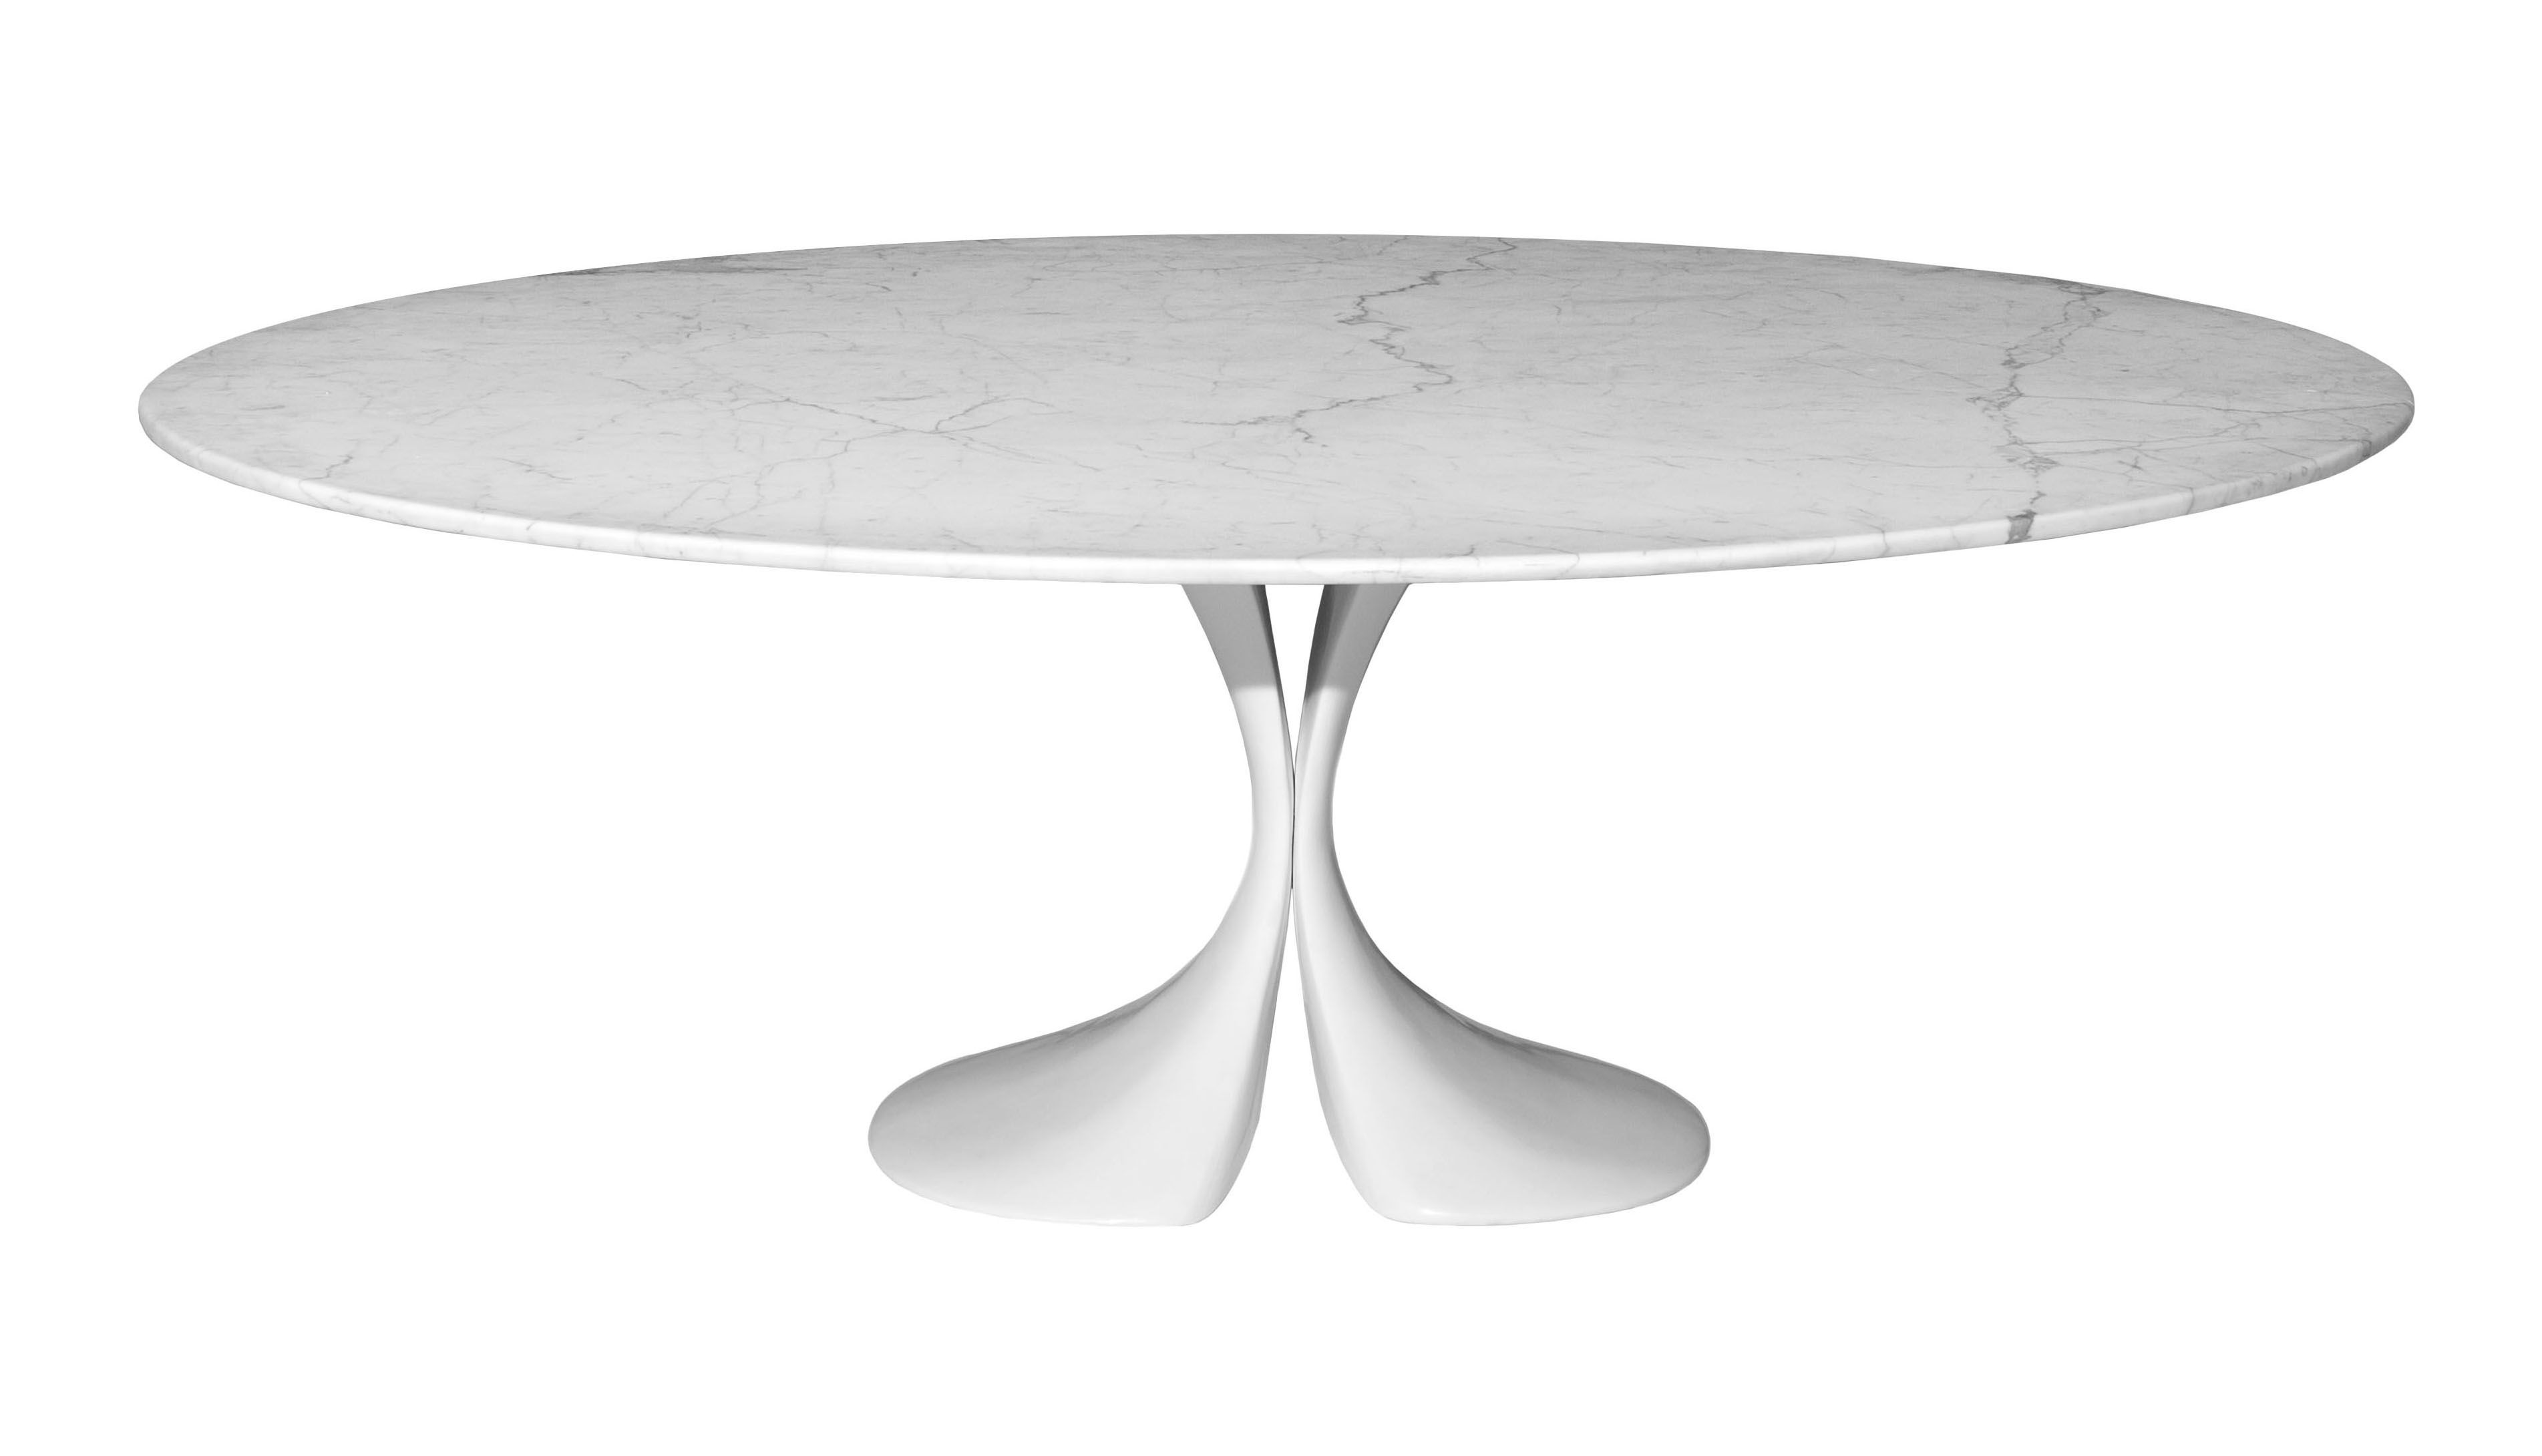 Trends - Dinner Time - Didymos Table ovale - 180 x 126 cm - Marble top by Driade - White marble top - Cristalplant, Marble